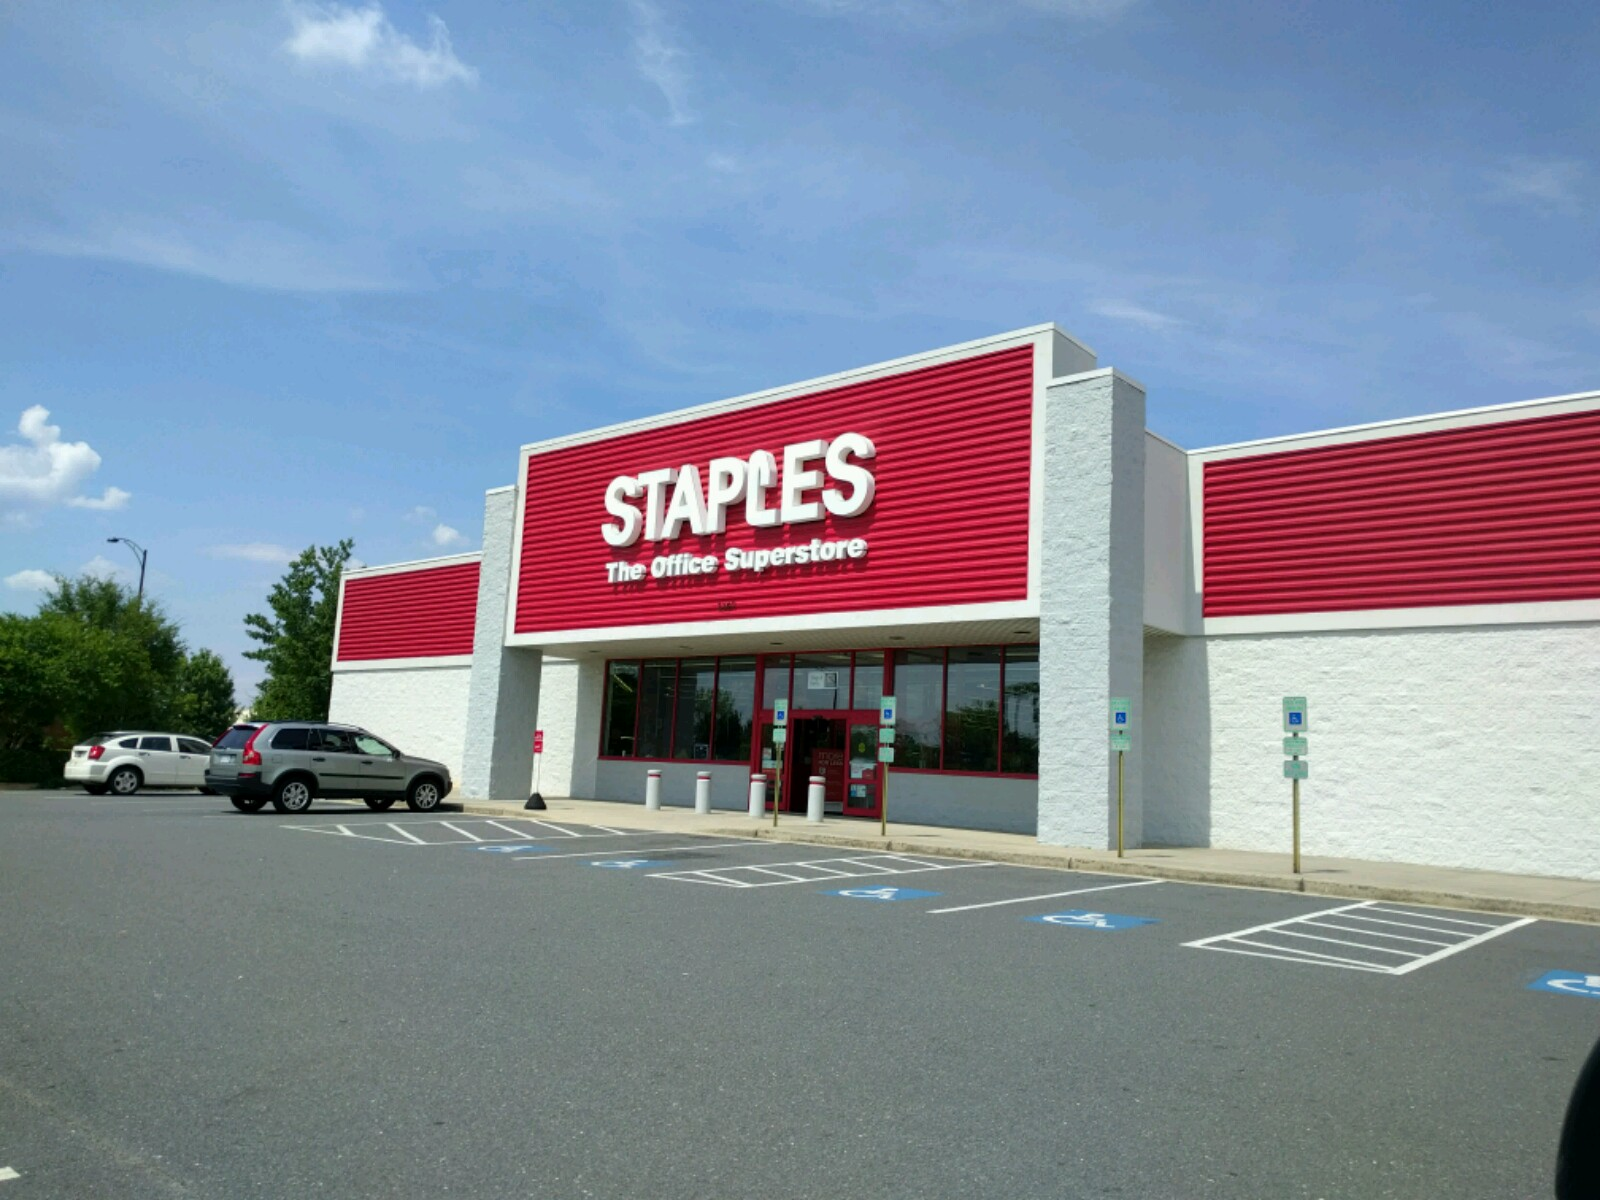 Staples store in Rock Hill, South Carolina.